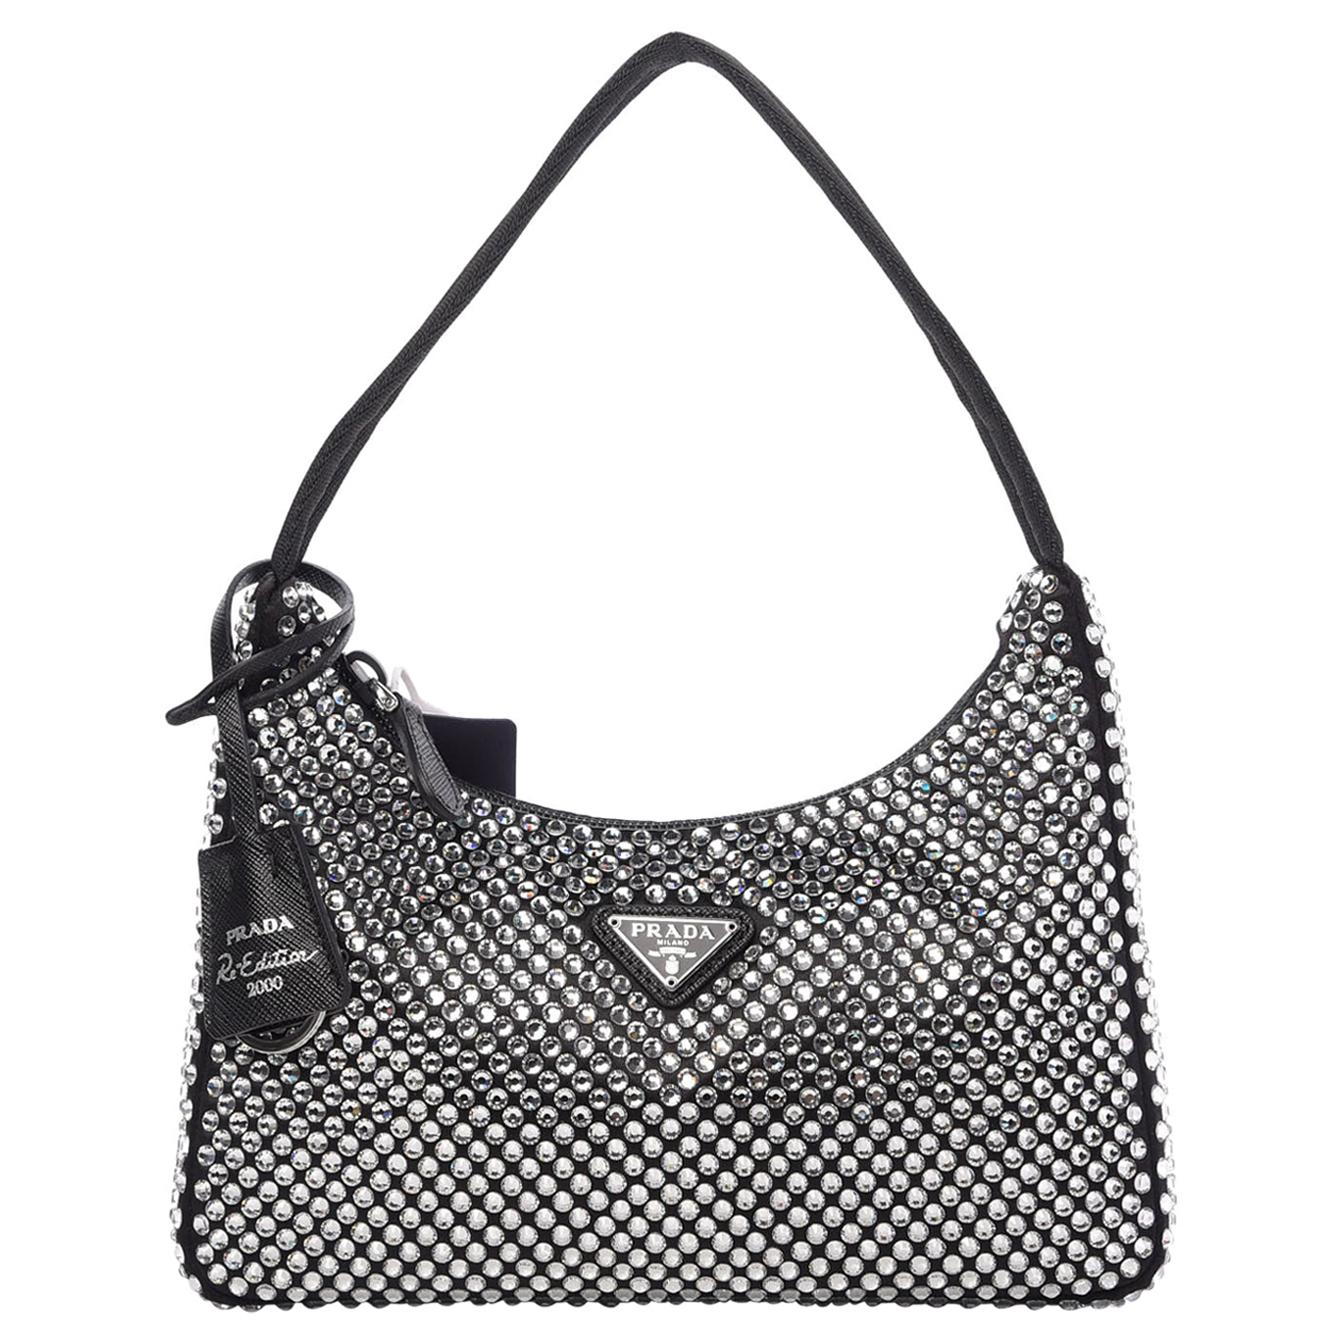 PRADA Satin Crystal Mini Re-Edition 2000 Bag Black Sold out in Boutiques